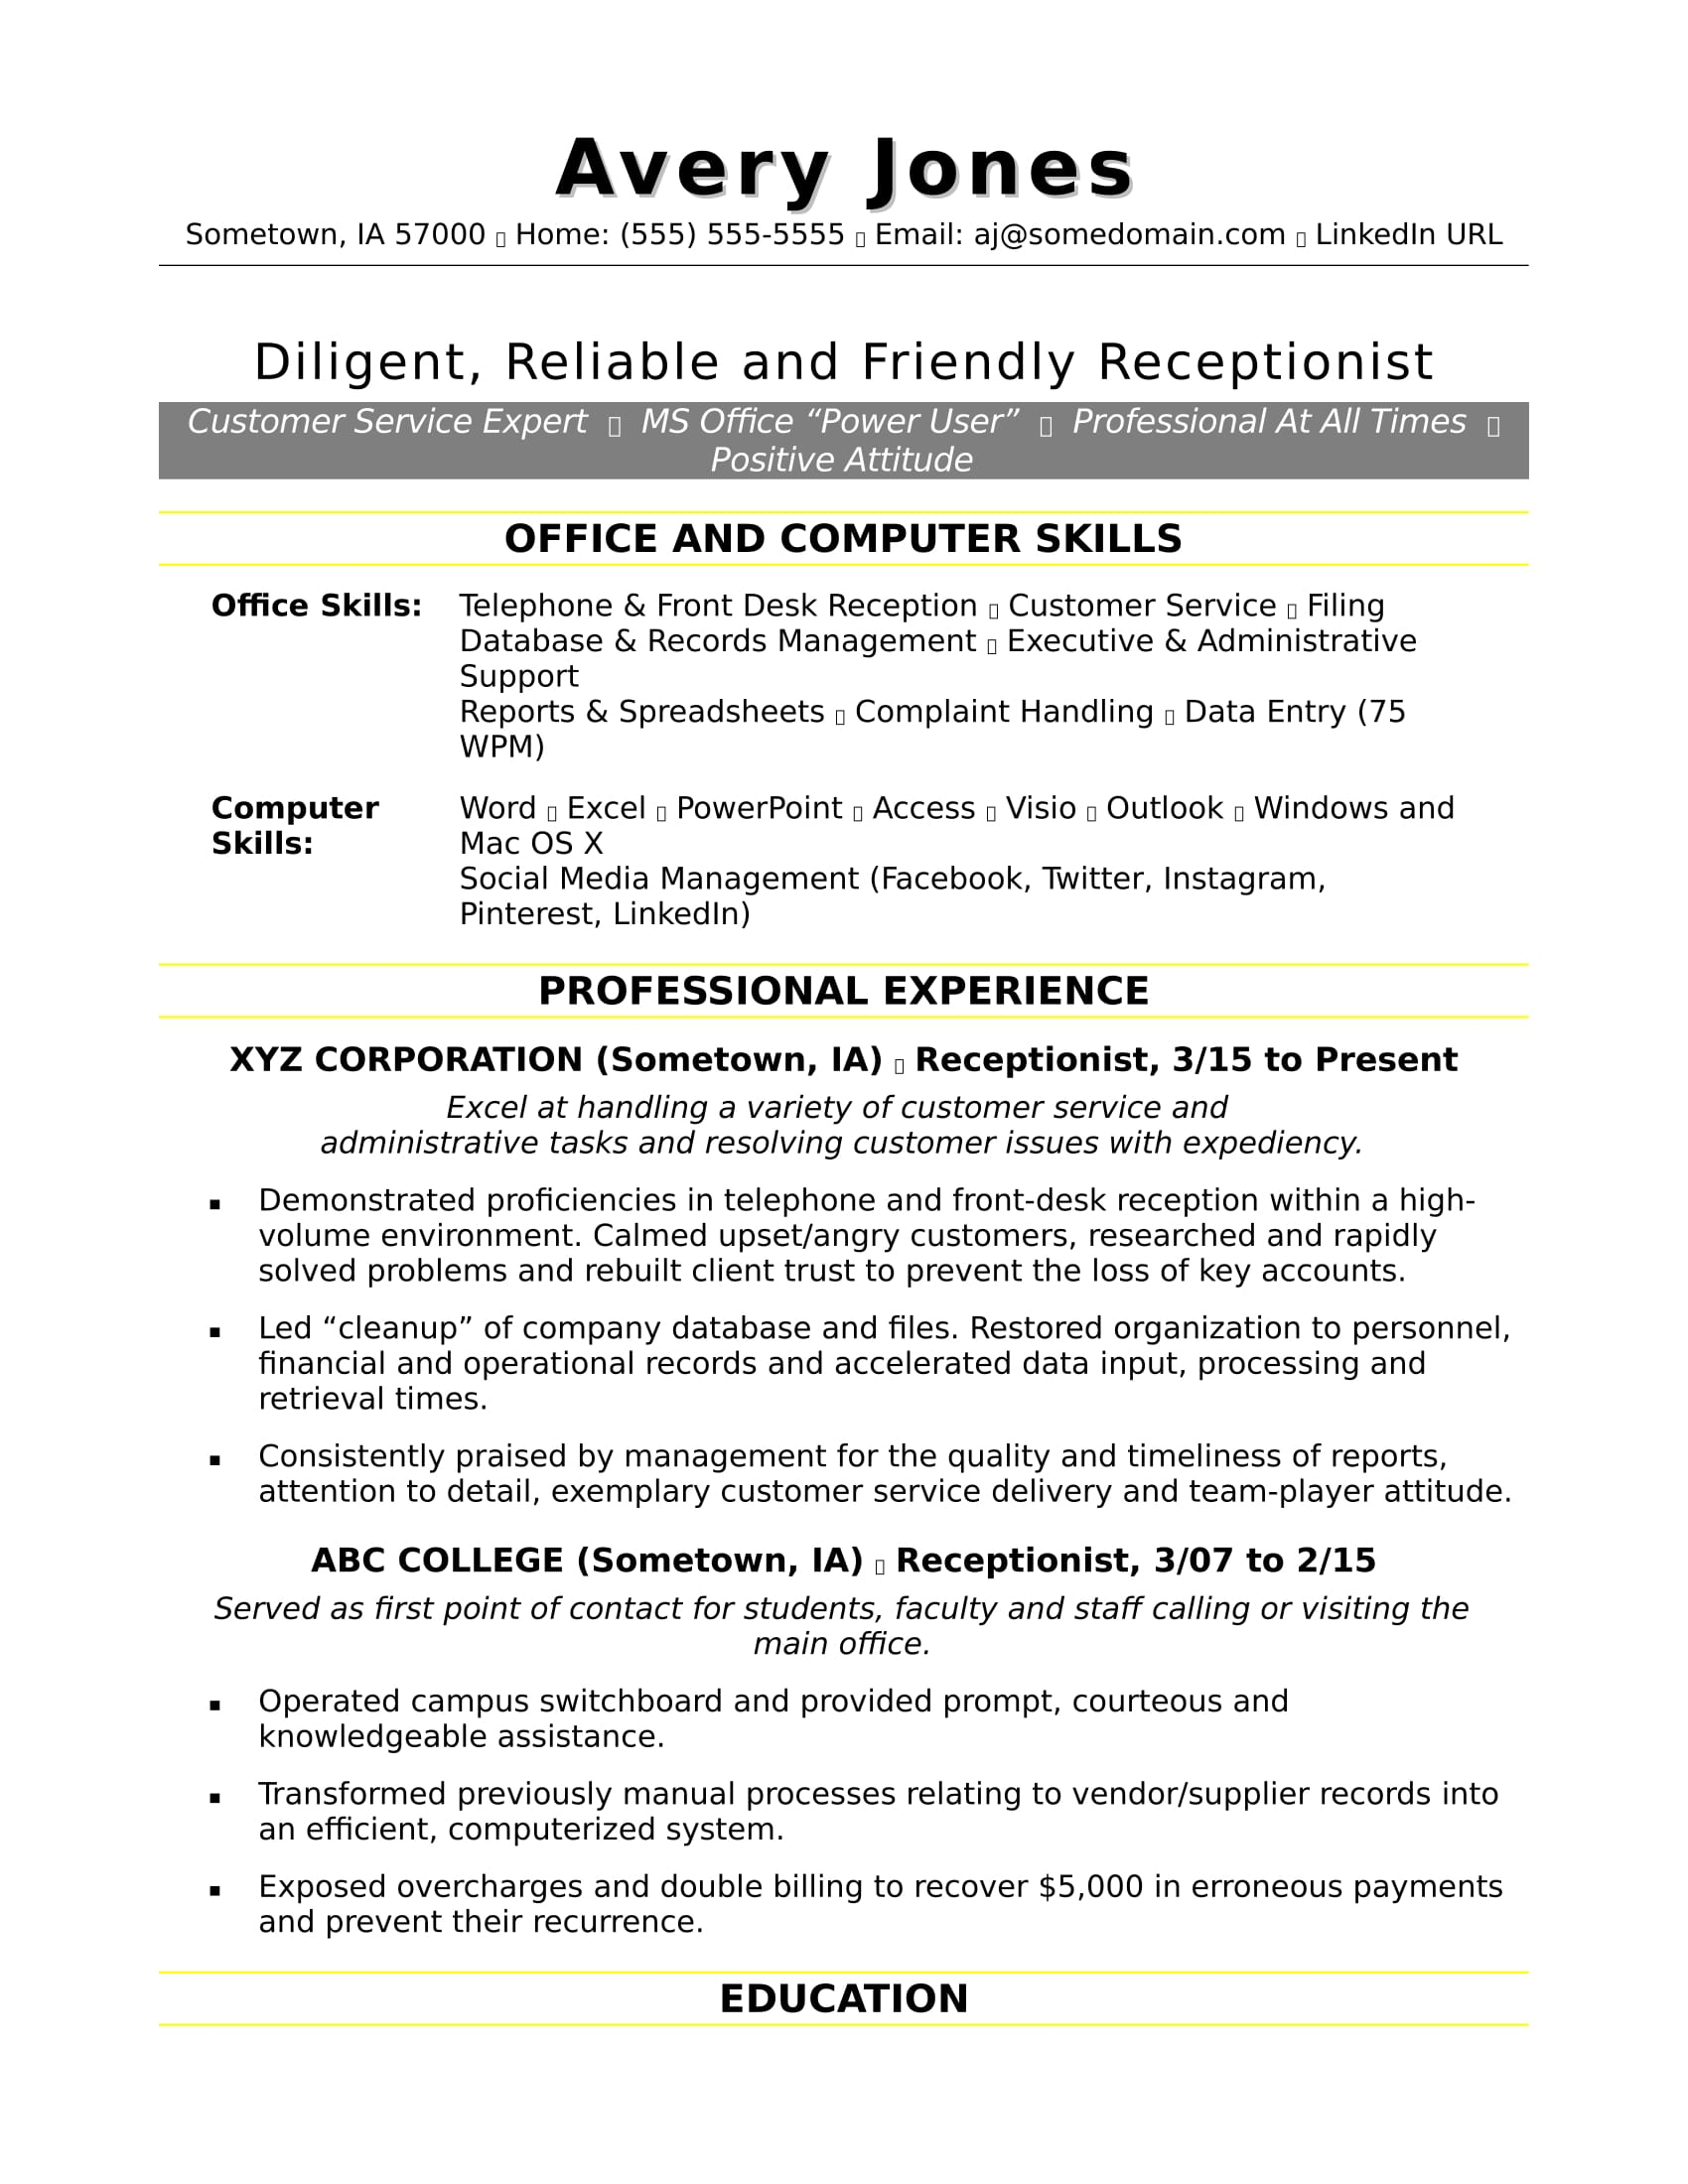 sample resume for a receptionist - Sample Receptionist Resume Doc